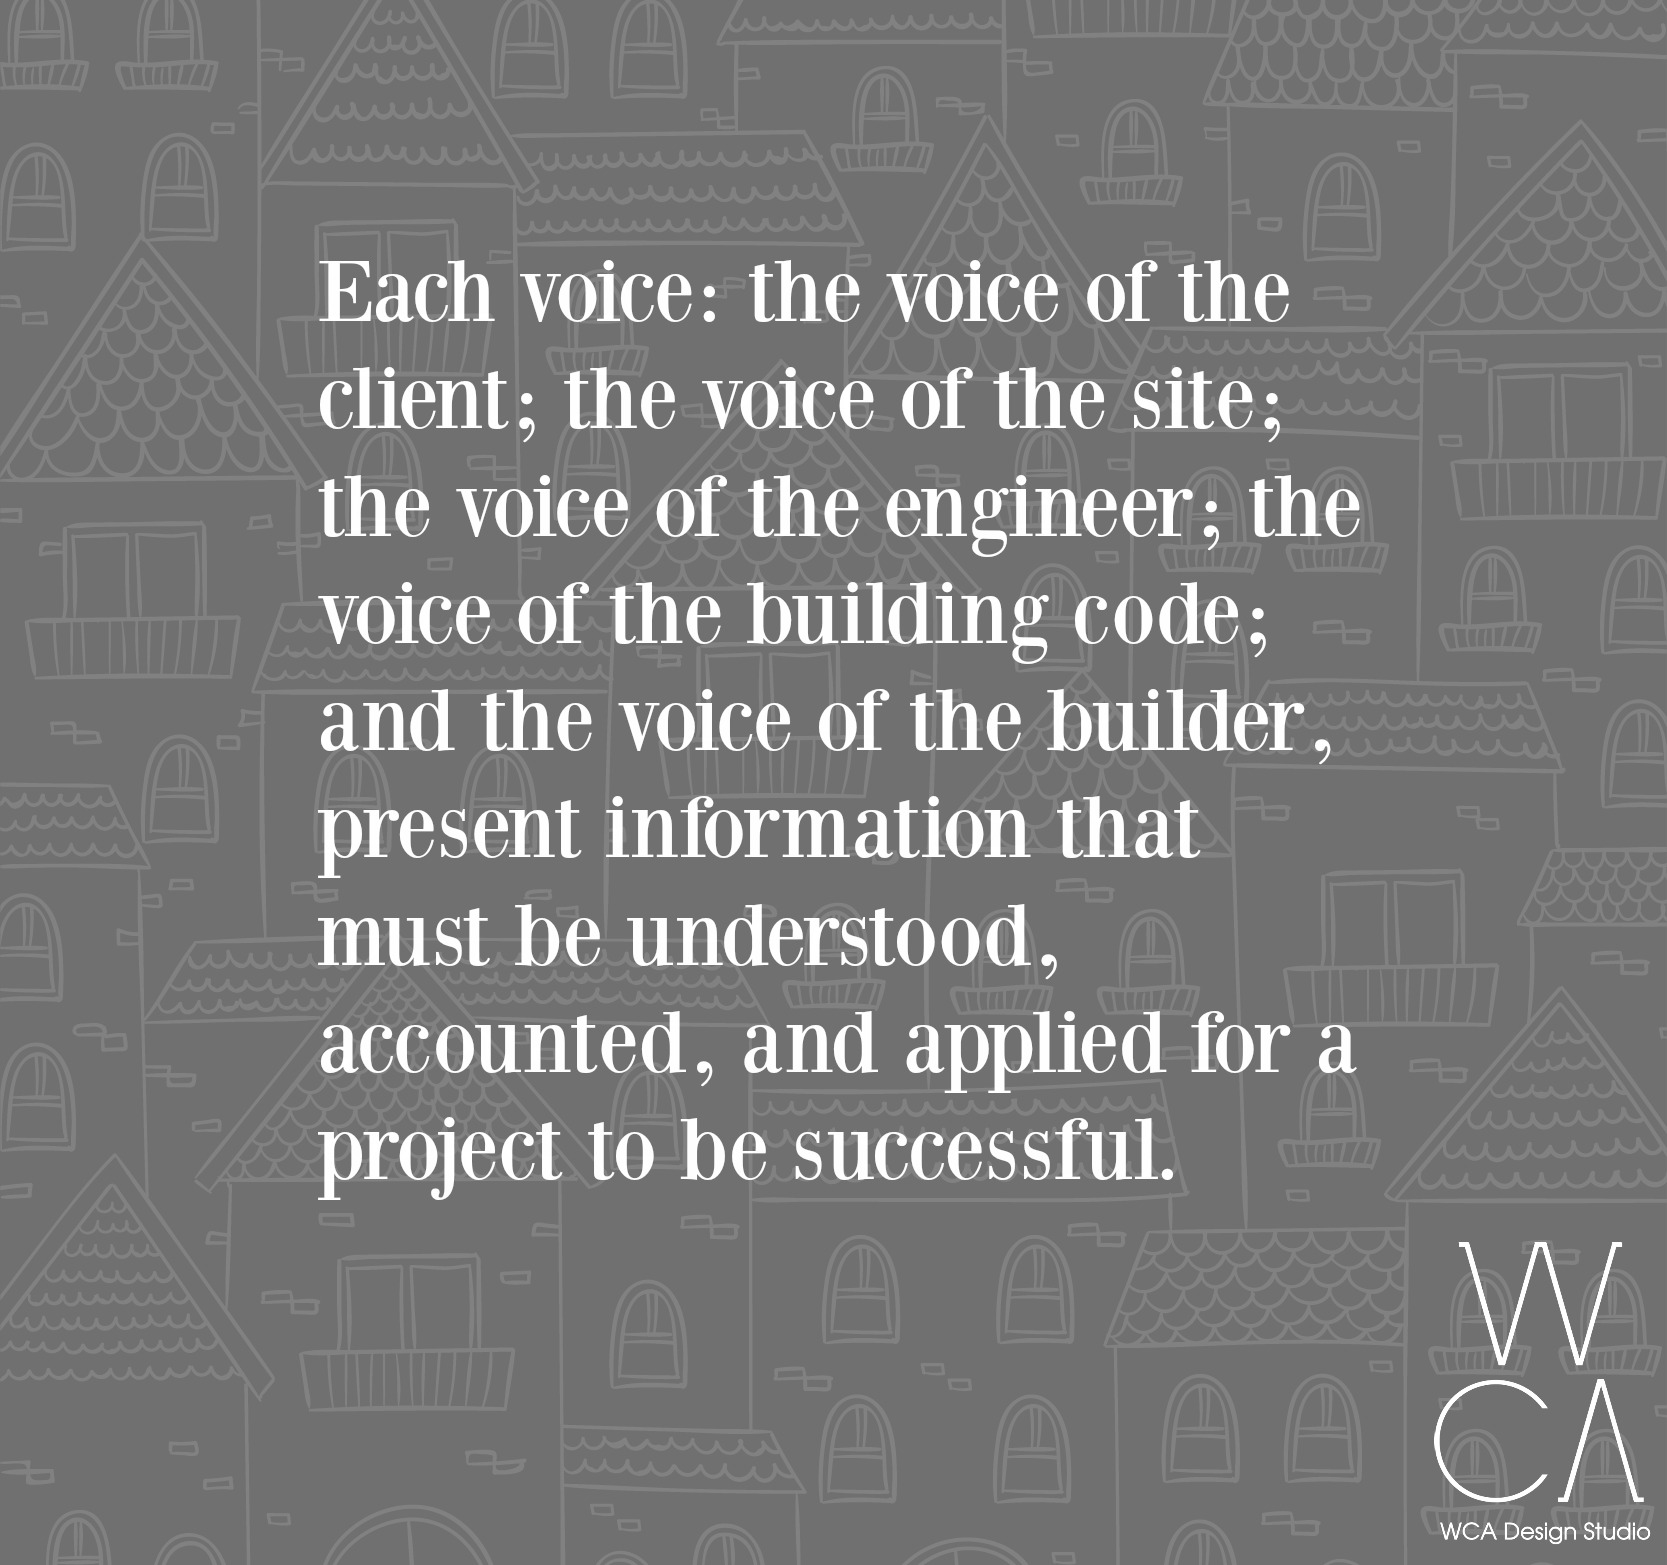 architecture-wca-lubbock-quote.jpg